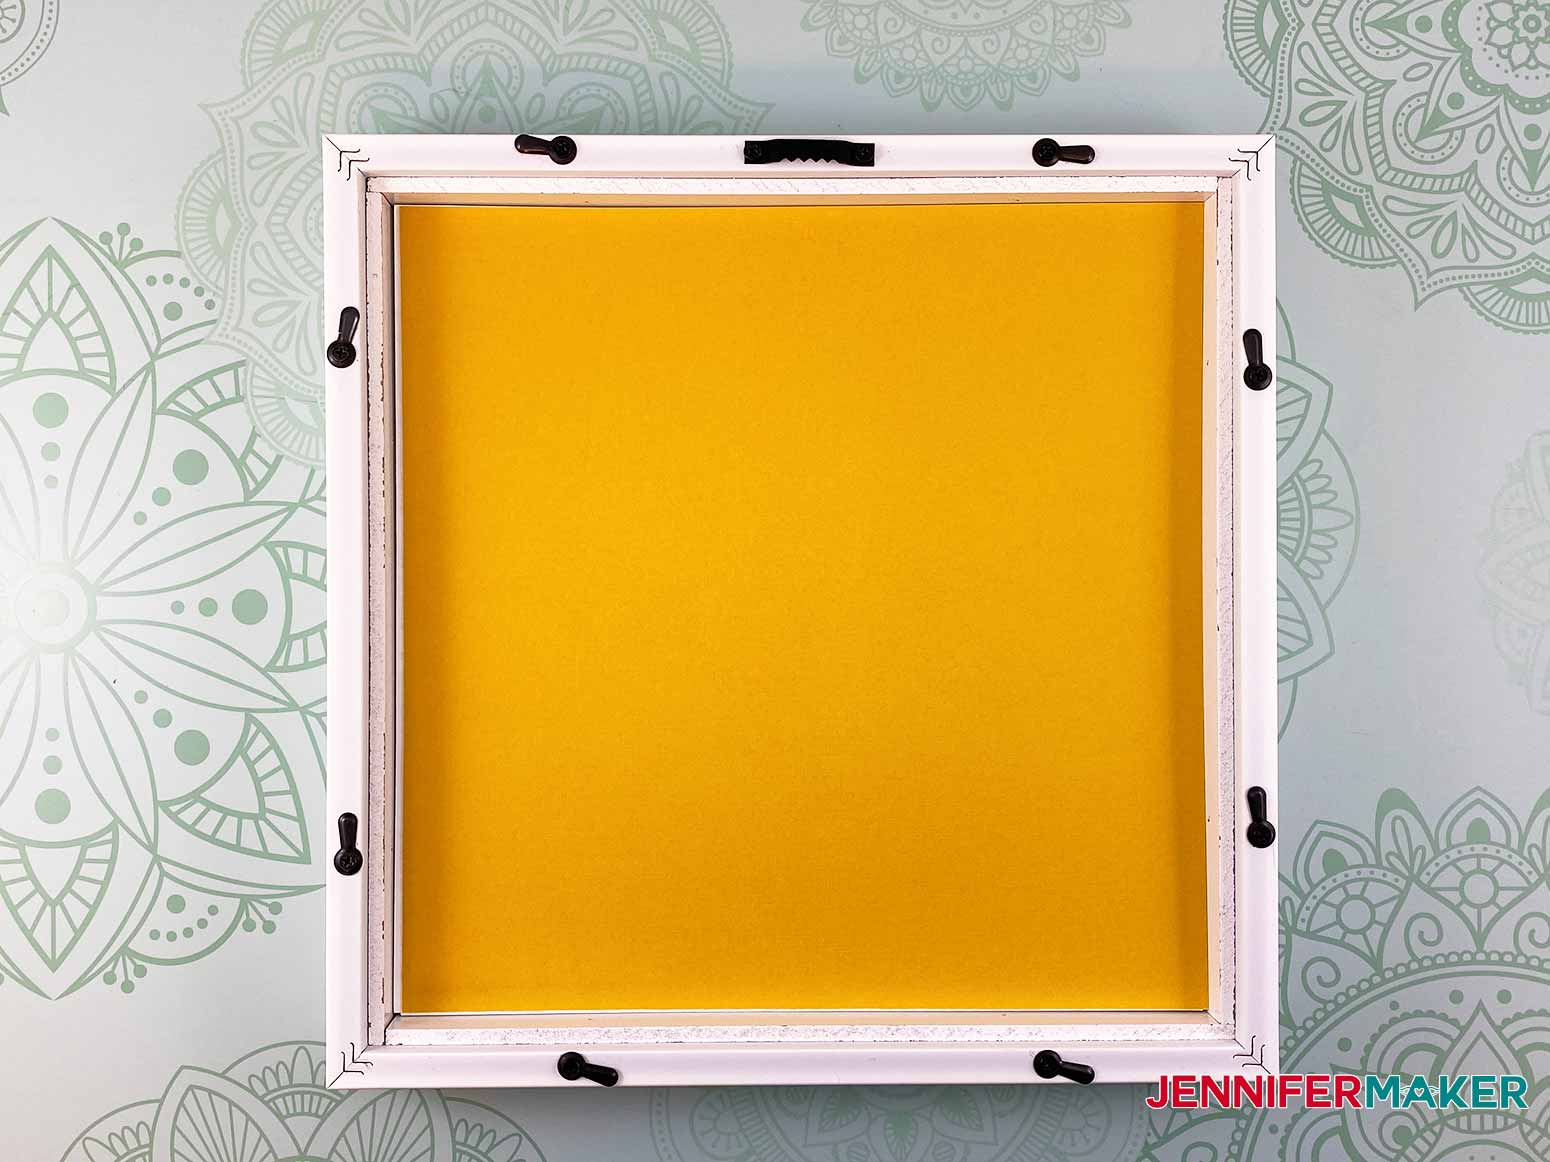 Add a contrasting layer of cardstock on top of the stacked layers in the picture frame for my 3d layered paper cut art project